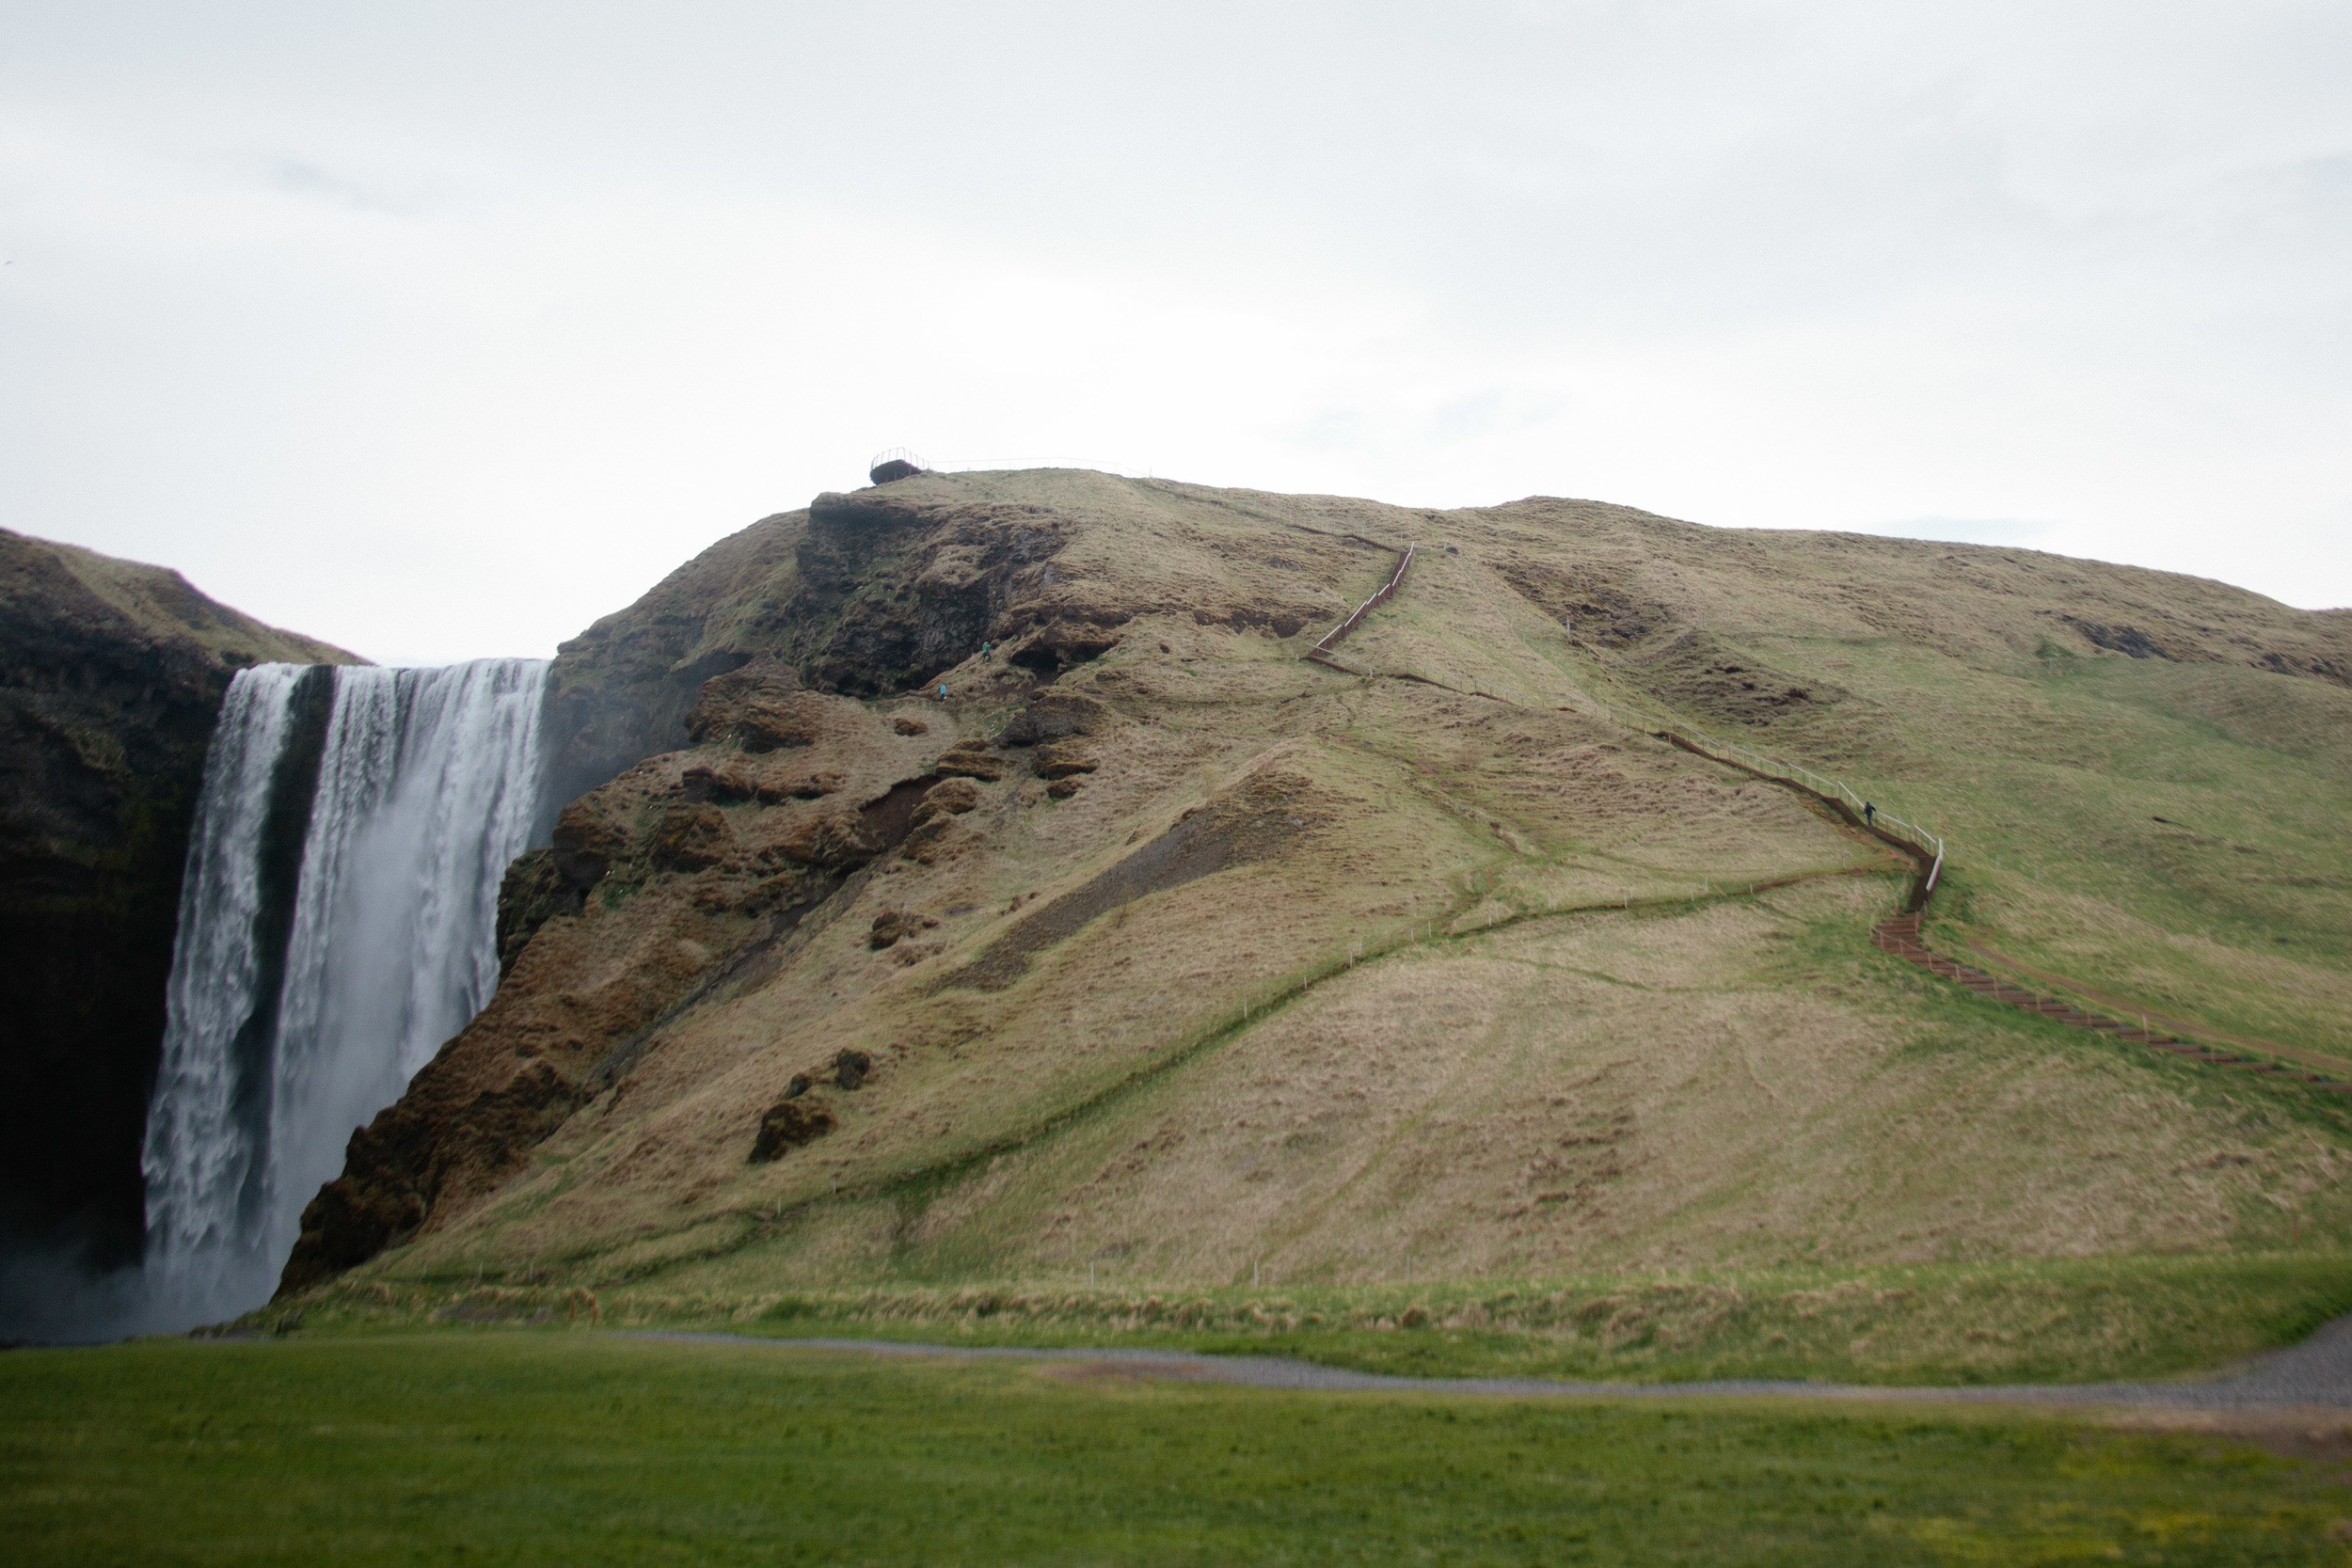 Skogarfoss - that zig-zag line on the left is the trail to the top! And that little black spot is a person!